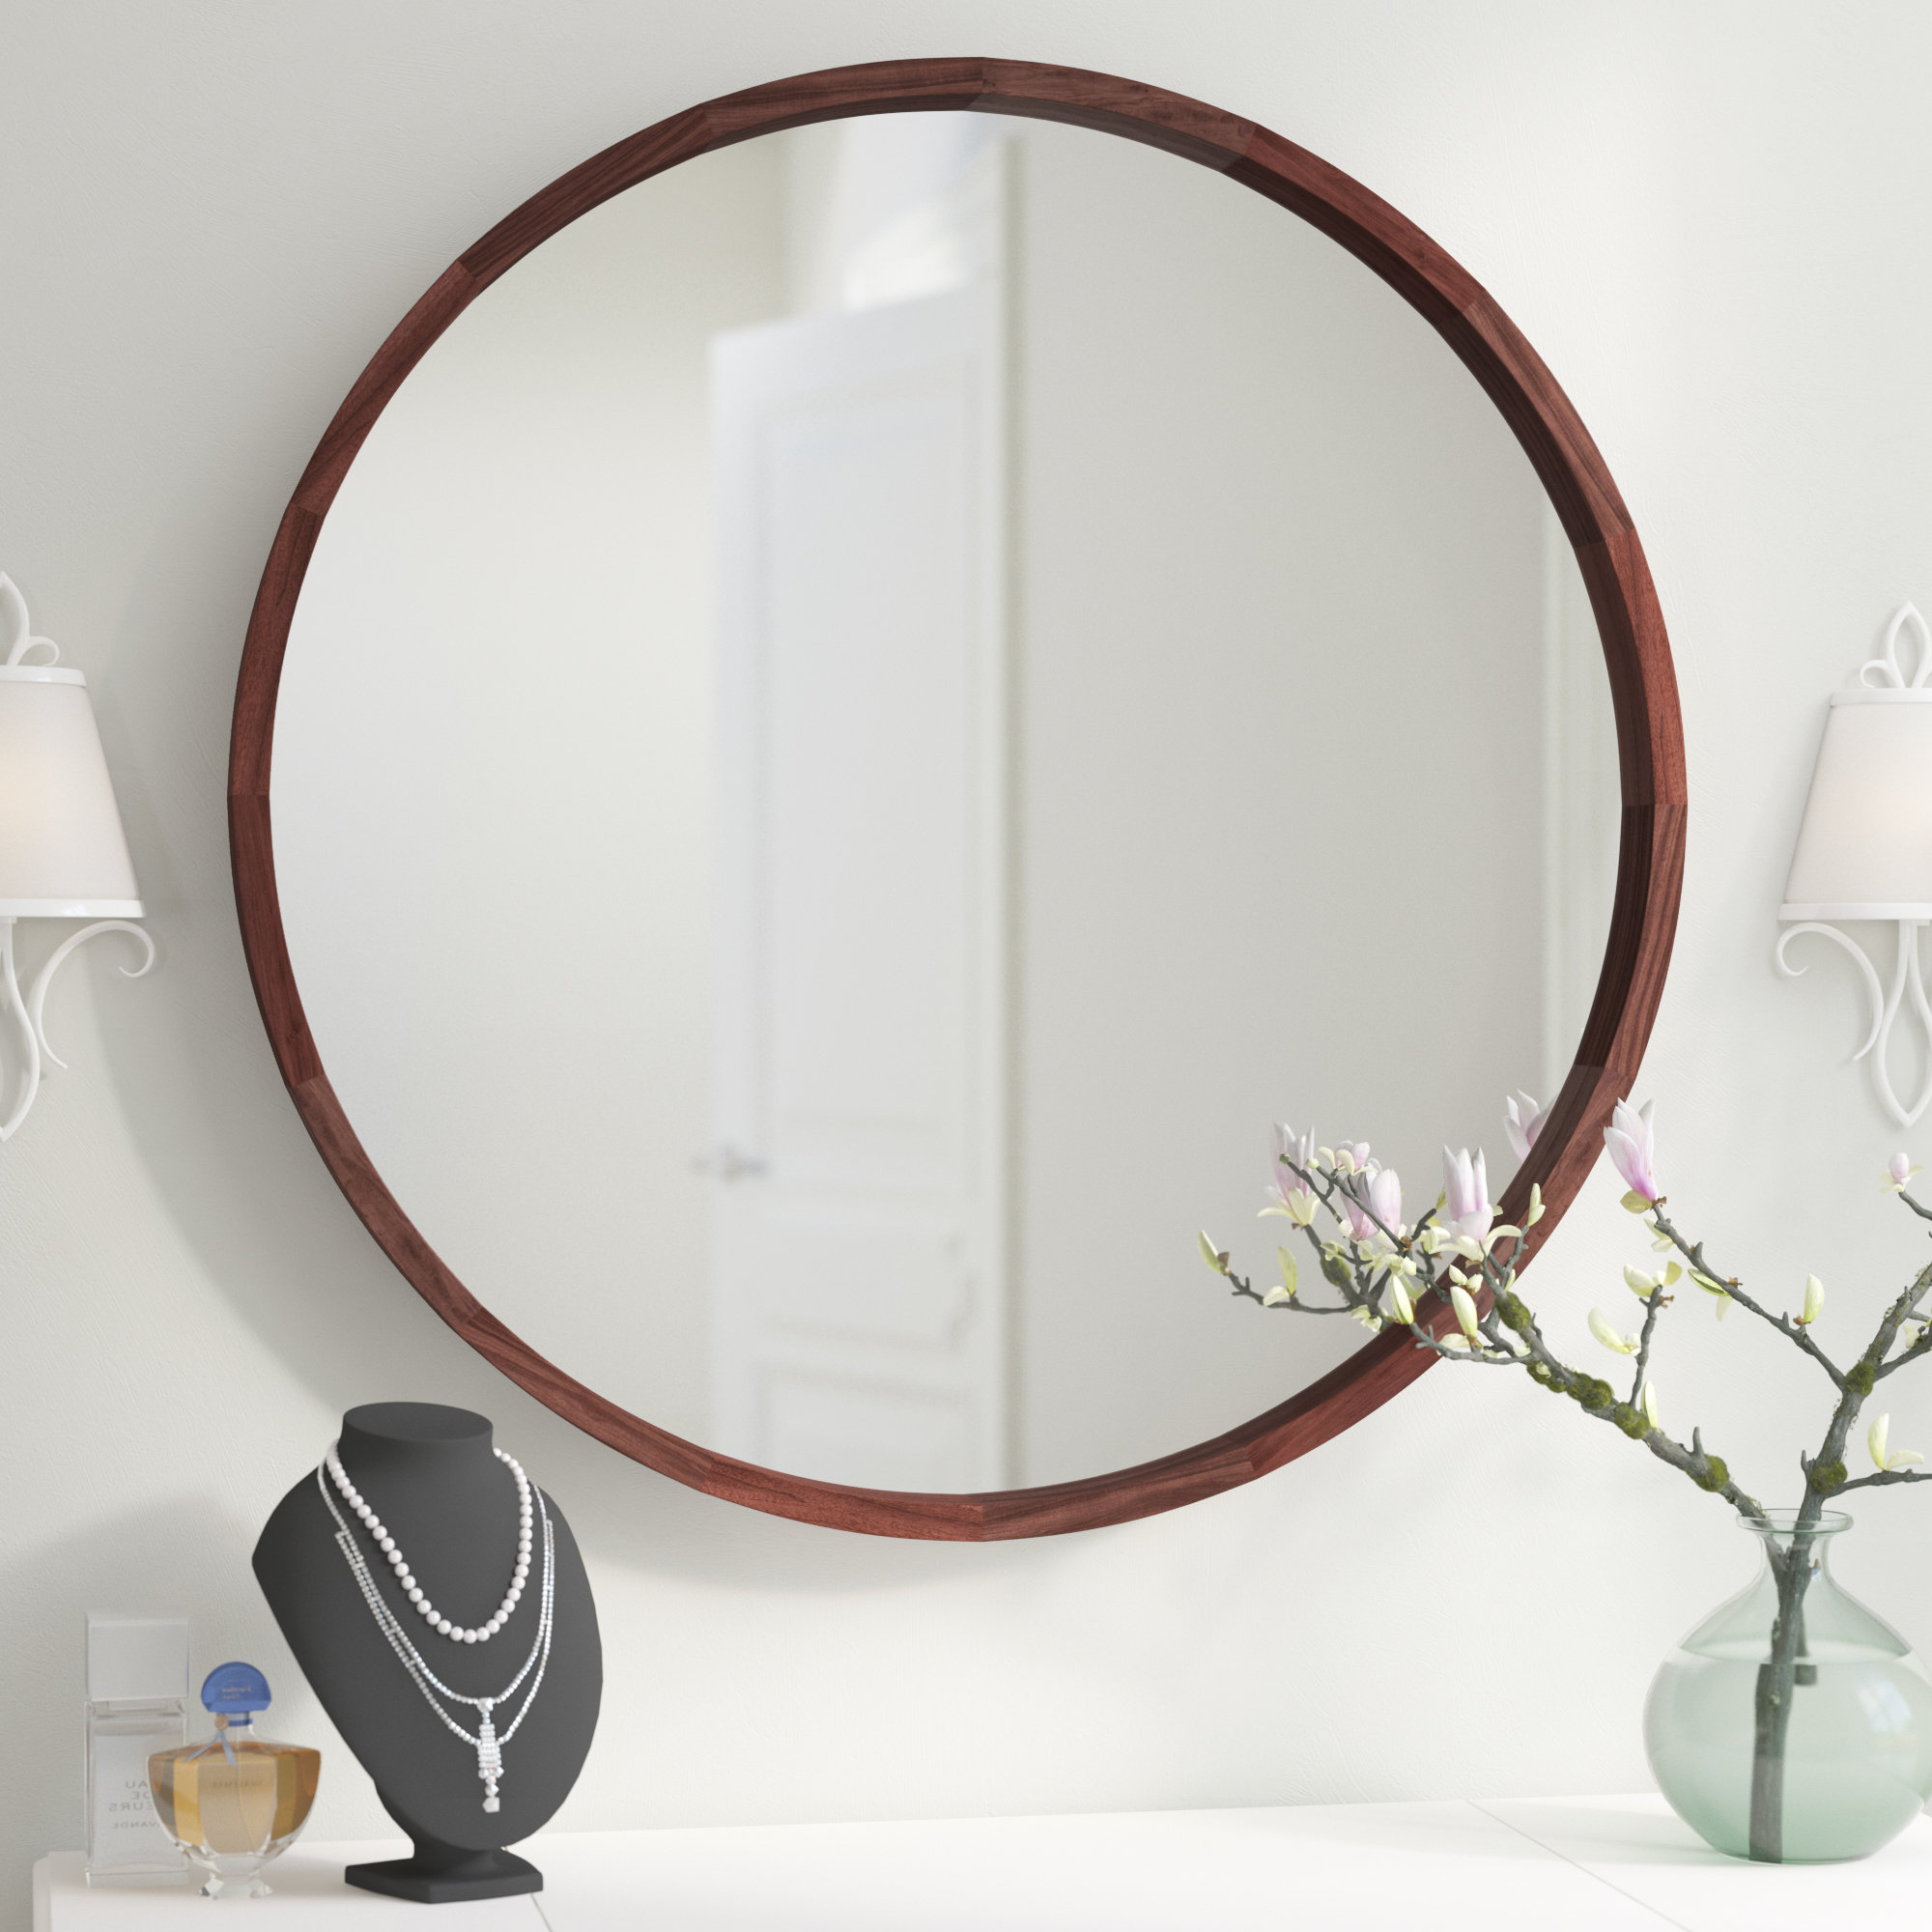 Most Recent Loftis Modern & Contemporary Accent Wall Mirror Pertaining To Vertical Round Wall Mirrors (View 16 of 20)